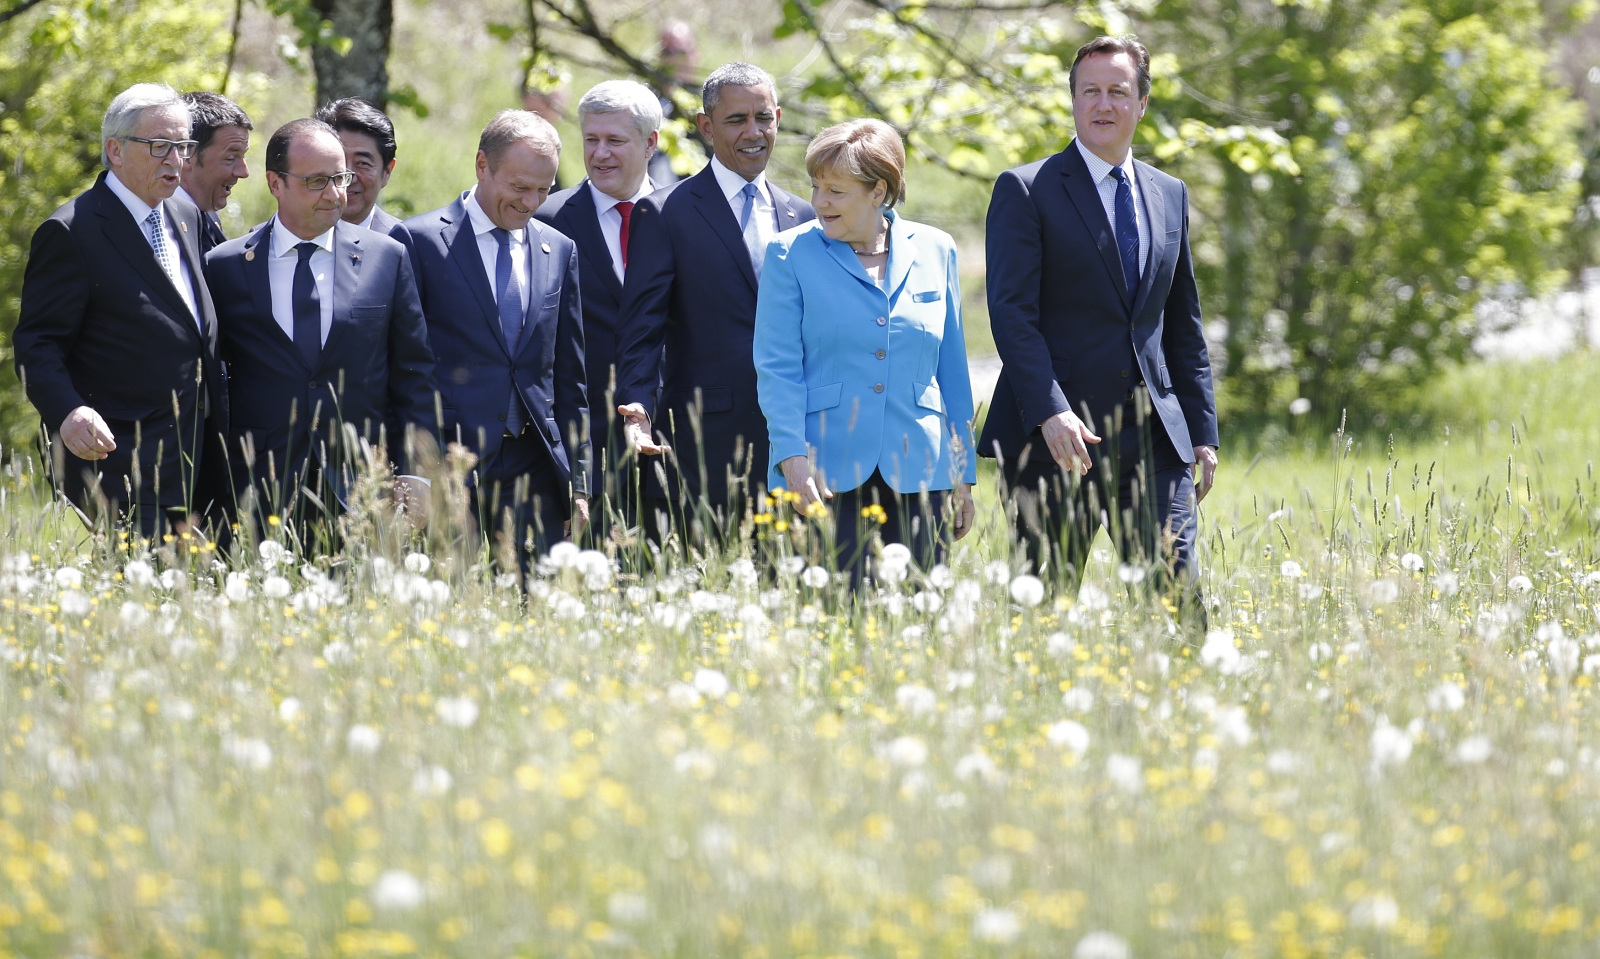 G7 summit Germany